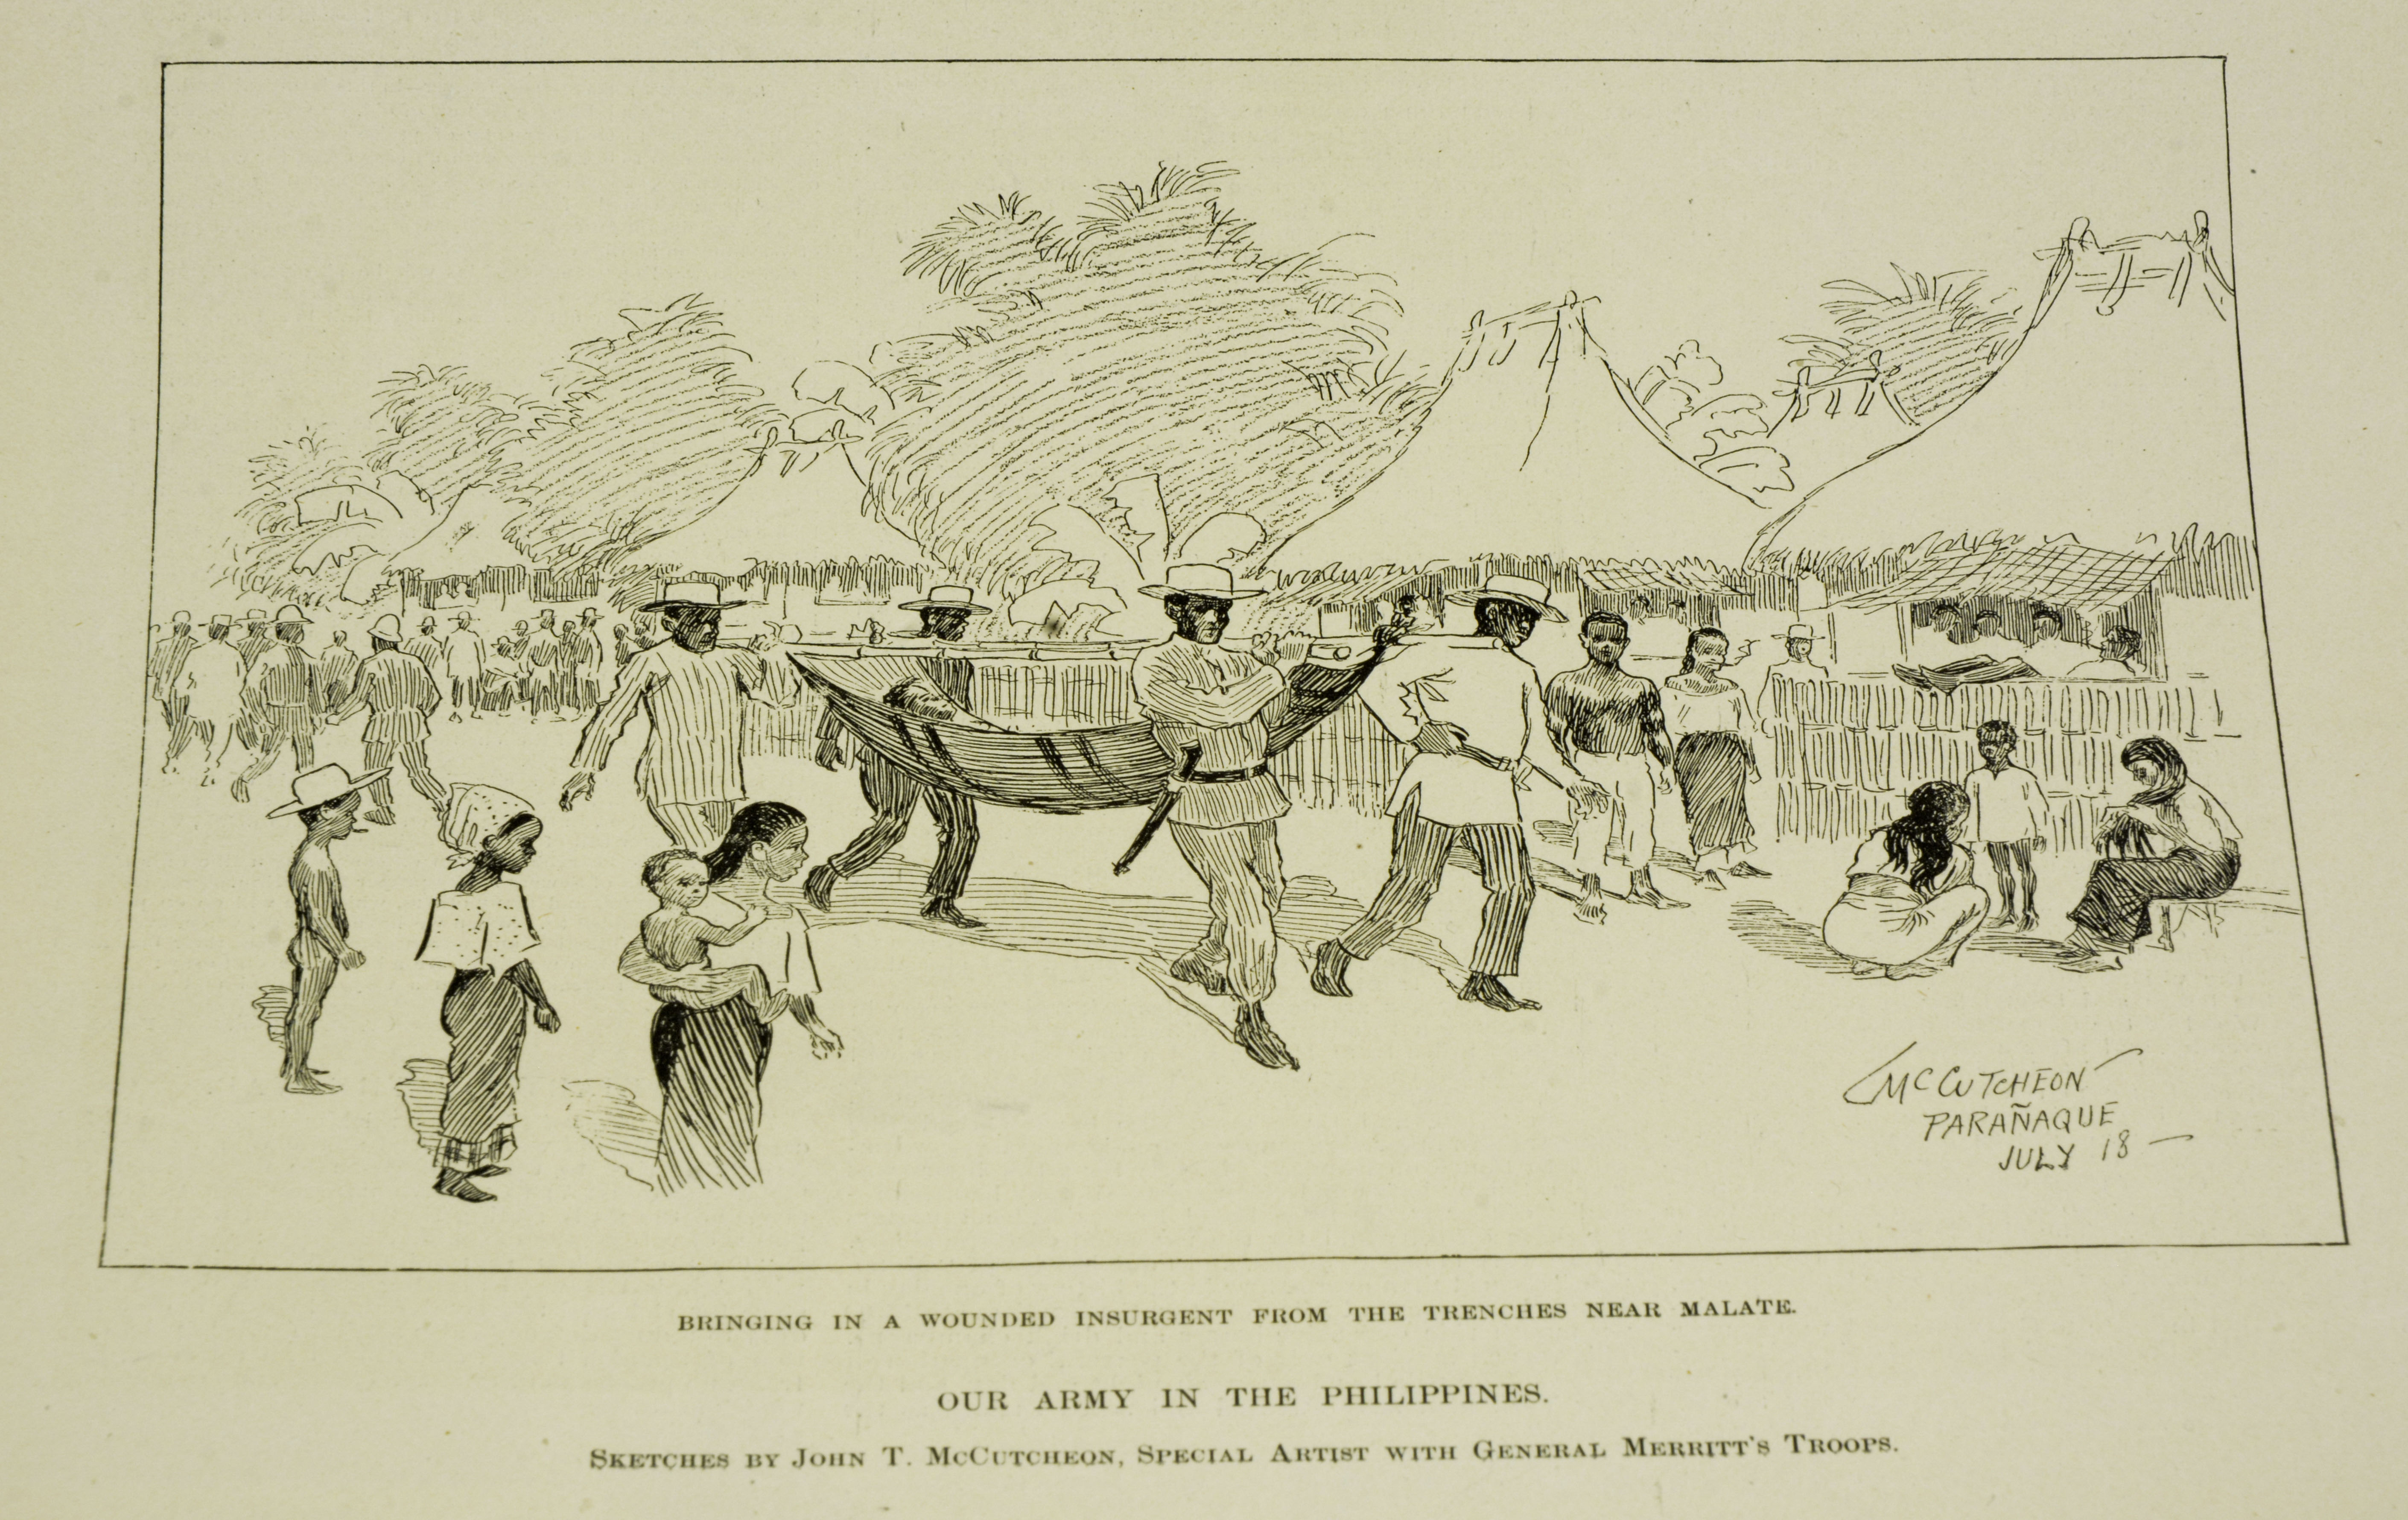 """Illustration owned by Paulla Santos Created in September 3, 1898  Acquired in June 2017  Acquired from Odana Antiques & Fine Arts Center, Madison, WI.  Made in New York City, Harper's Weekly. Harper & Brothers Publishers.  Was purchased  It is an illustrations of Filipinos carrying a wounded insurgent.  English is used in the document.  Importance: """"It is important because it is amazing to own something that was created during a huge turning point in Philippine and US History.""""  Notes from Sarah Carlson, in discussion with Santos: """"[I] Like to go antiquing, found some did publications of the Philippines History Student - studying transnational marriages between PI and USA. Amazing to find a PI object in the Midwest. Different sellers throughout antique shop seller got it at garage sale. Got it last month, saving money to frame right now in a bag. Confusing caption - who are """"our army"""" who is the """"Insurgent"""". Taking a summer intern program at Madison, class trip to Chicago. Went on collections tour, heard about digitization. Connects two parents' history family history which inspired research connection to the Philippines, found in Midwest.  Any views, findings, conclusions, or recommendations expressed in this story do not necessarily represent those of the National Endowment for the Humanities. [Copyright] Field Museum of Natural History - CC BY-NC"""